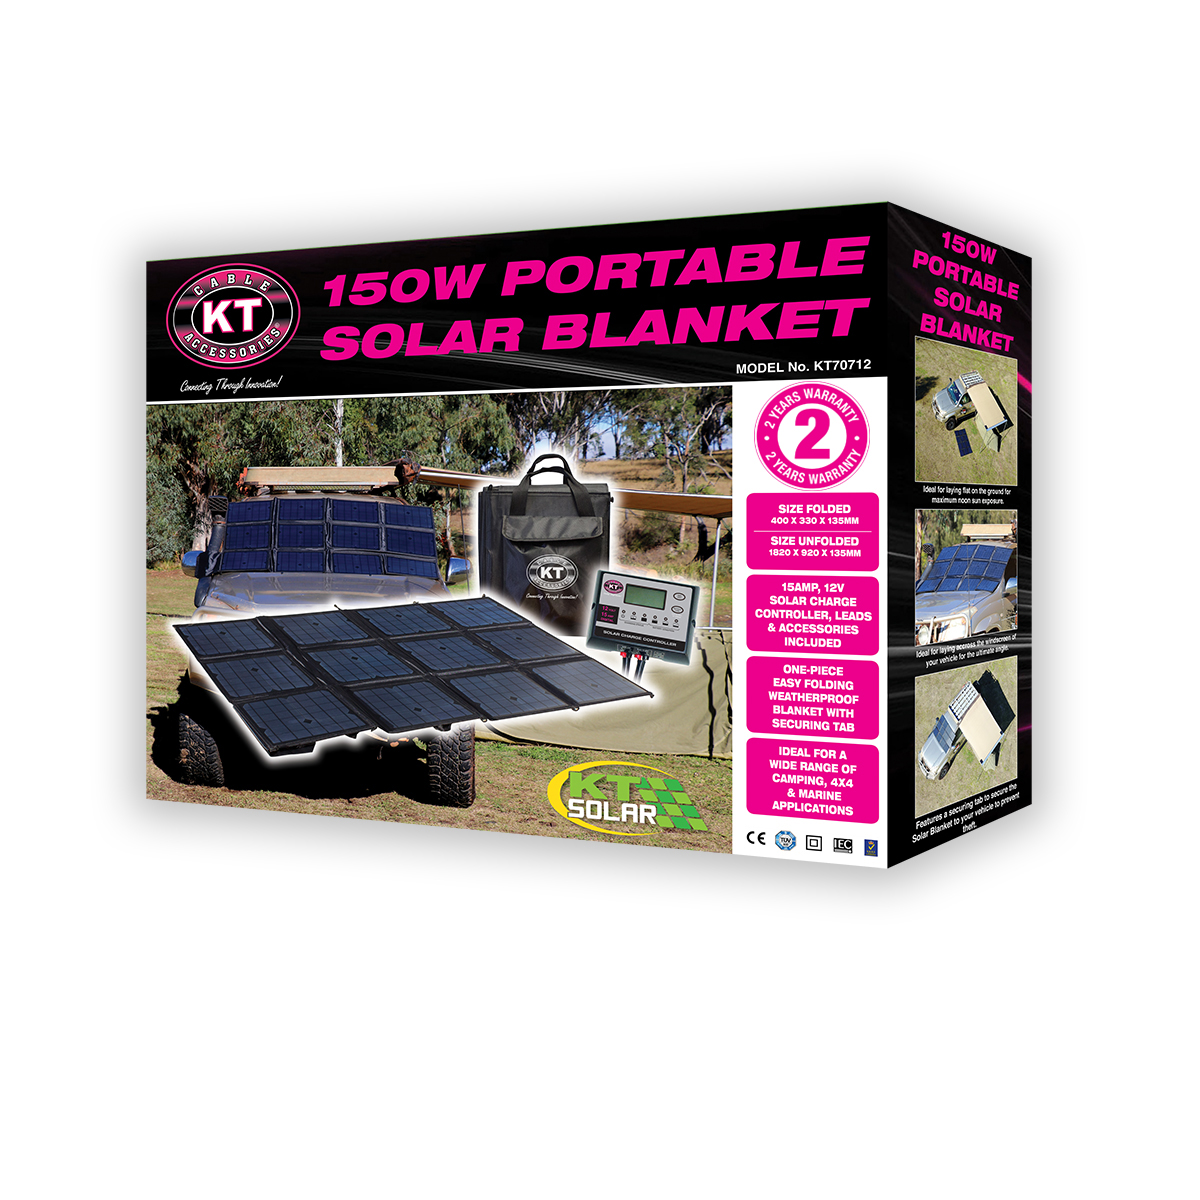 KT 150 Watt Portable Solar Blanket